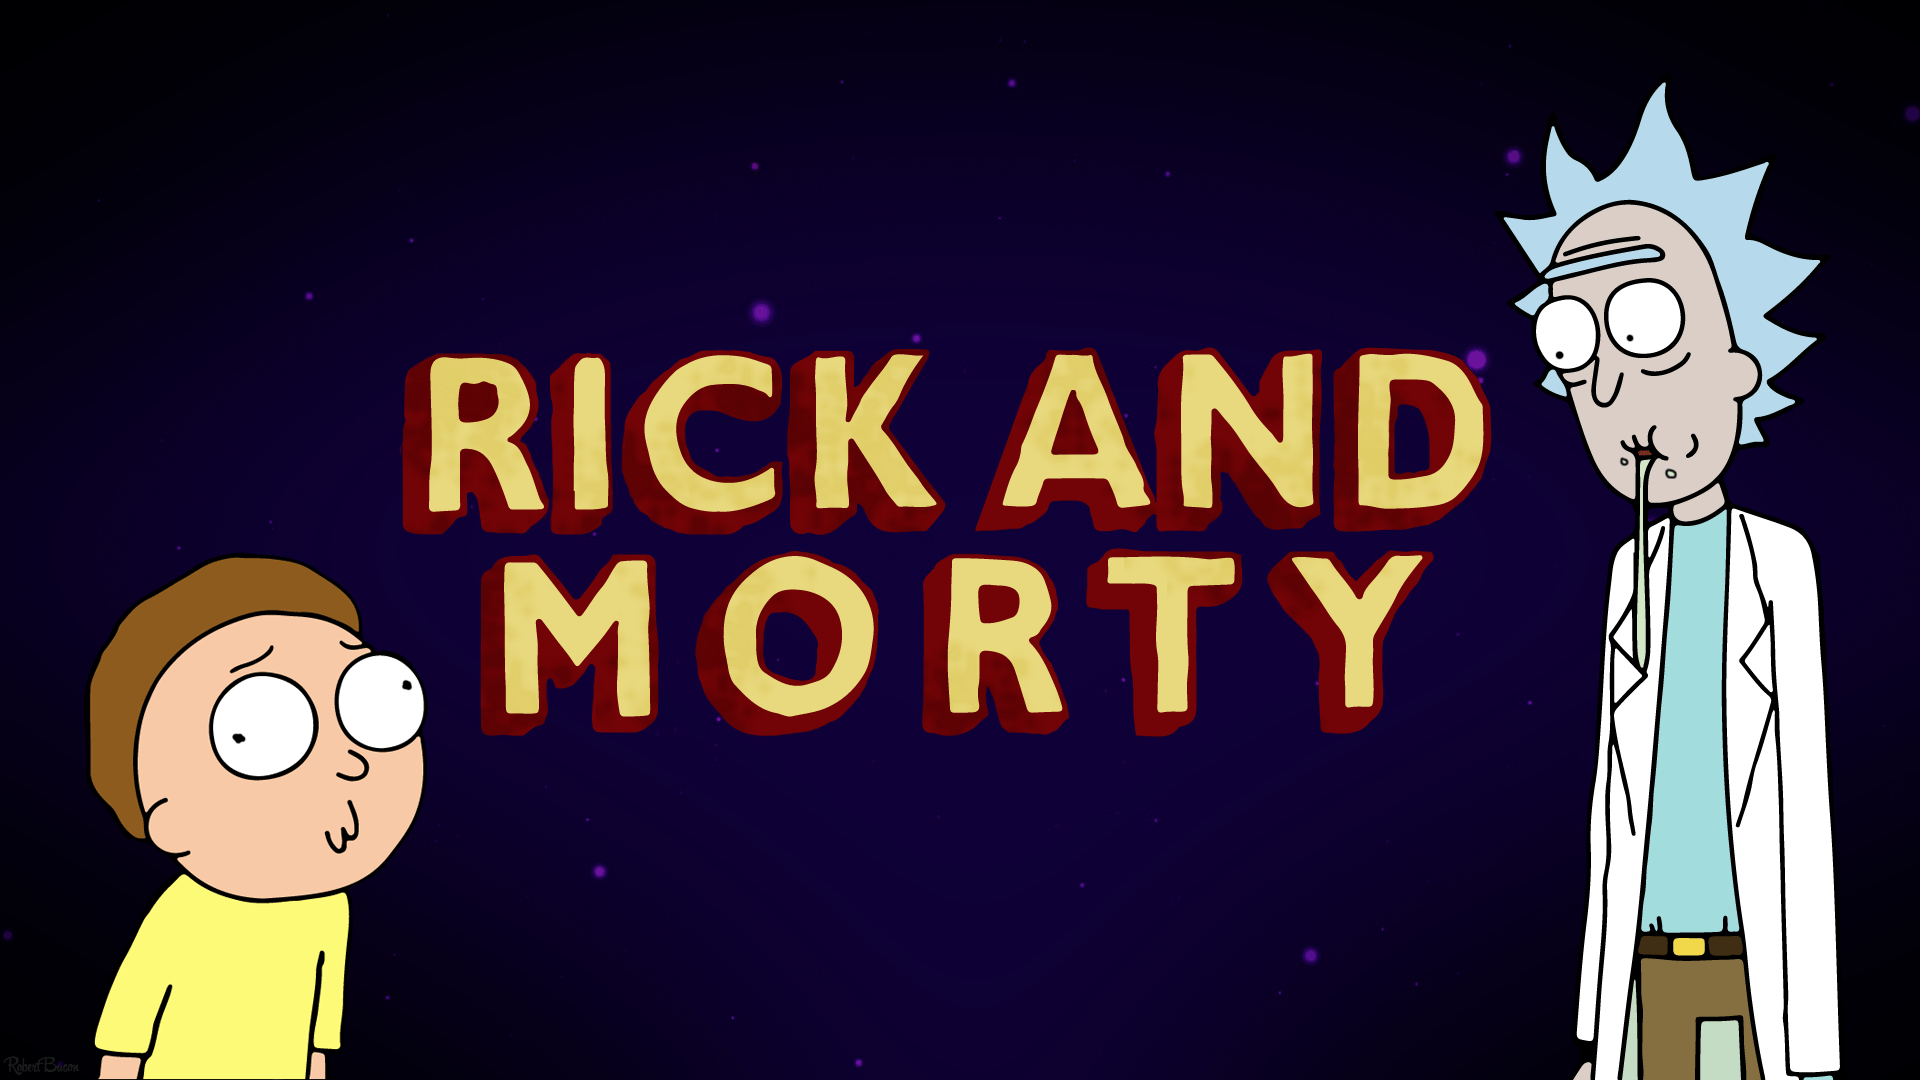 rick and morty mac wallpaper, rick and morty space wallpaper